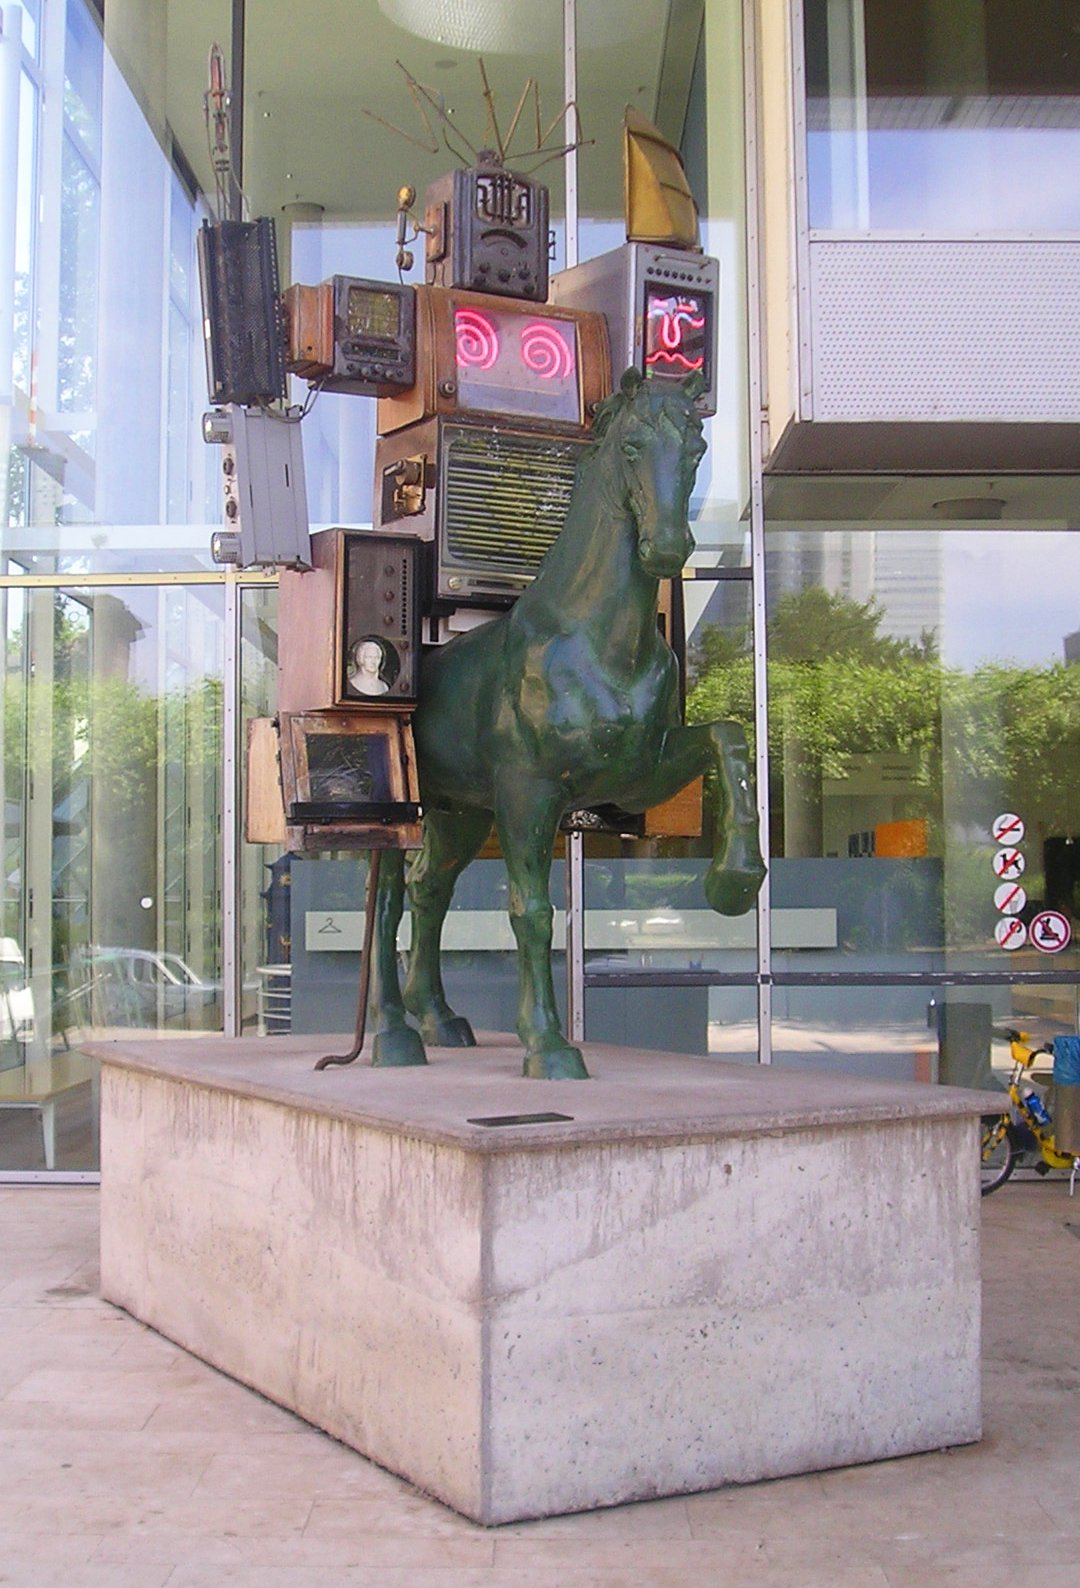 Image of Nam June Paik from Wikidata